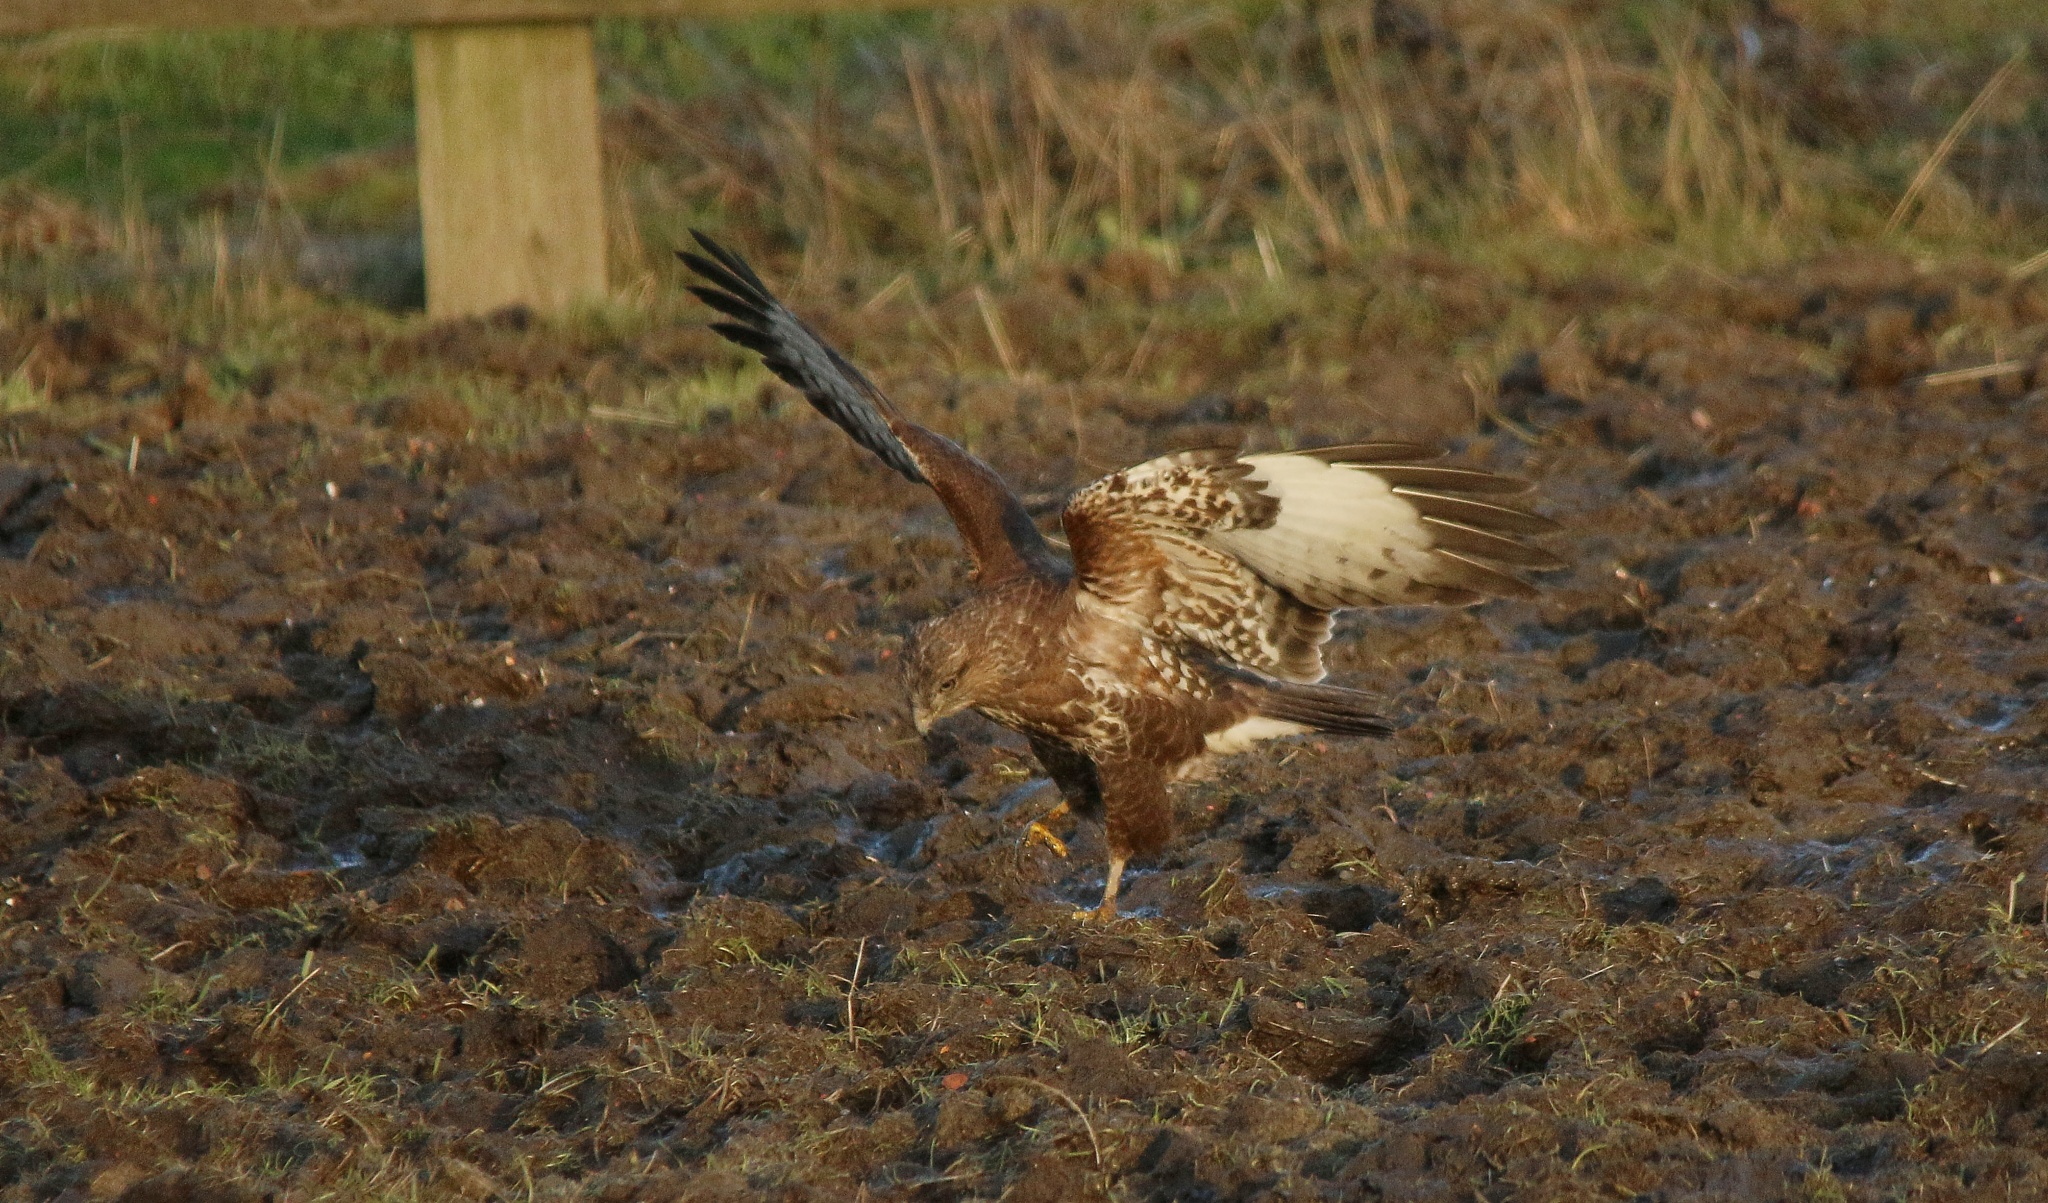 Young Buzzard catching earthworms  by annecotton